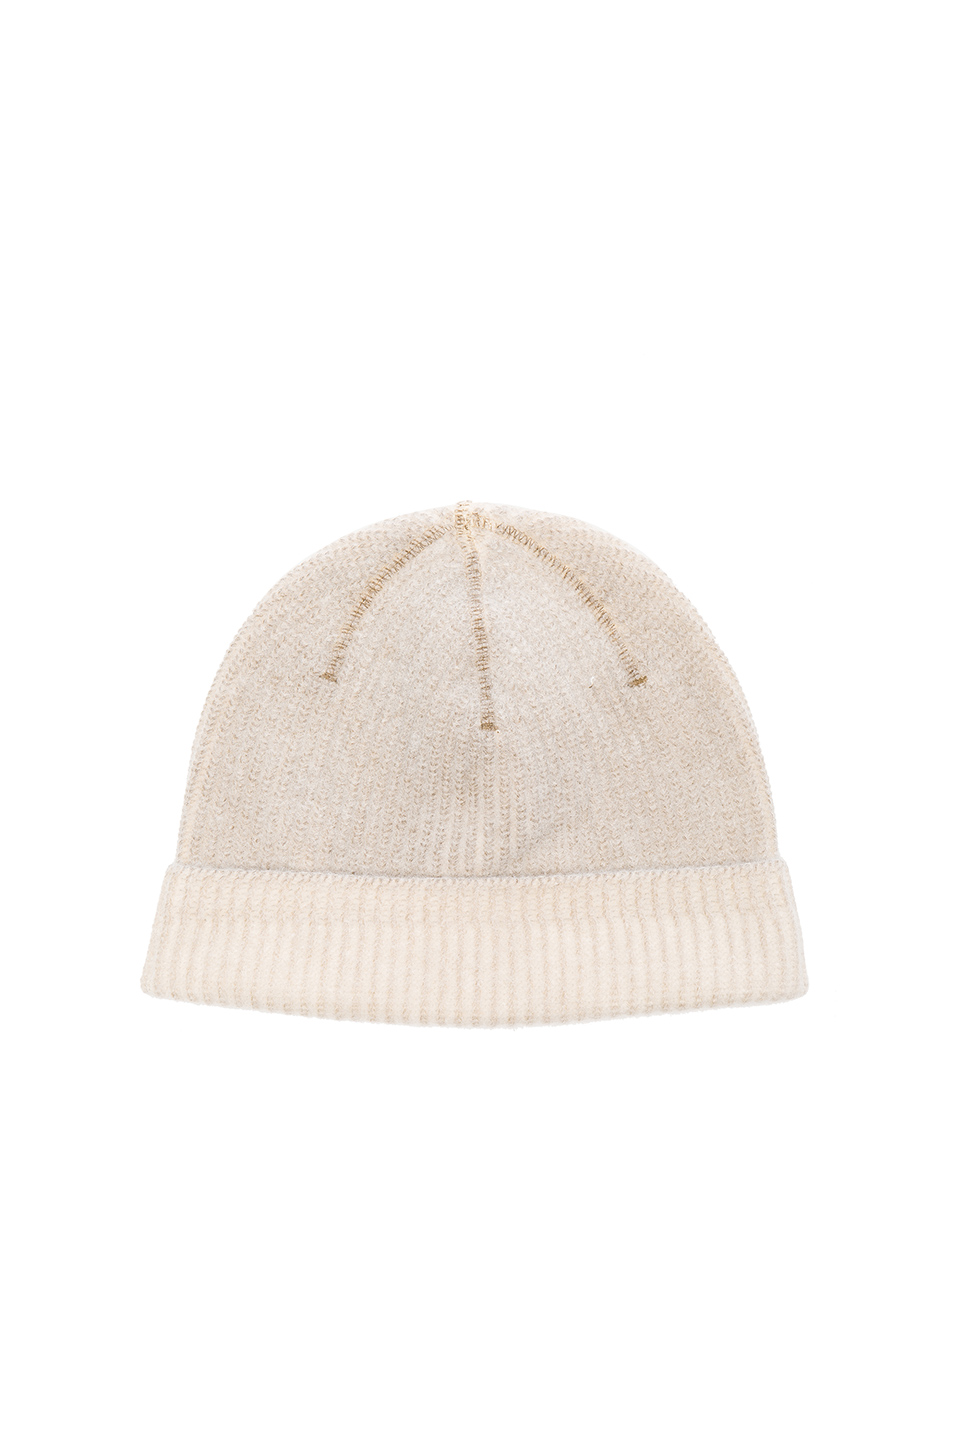 Our Legacy Knitted Hat in Neutrals